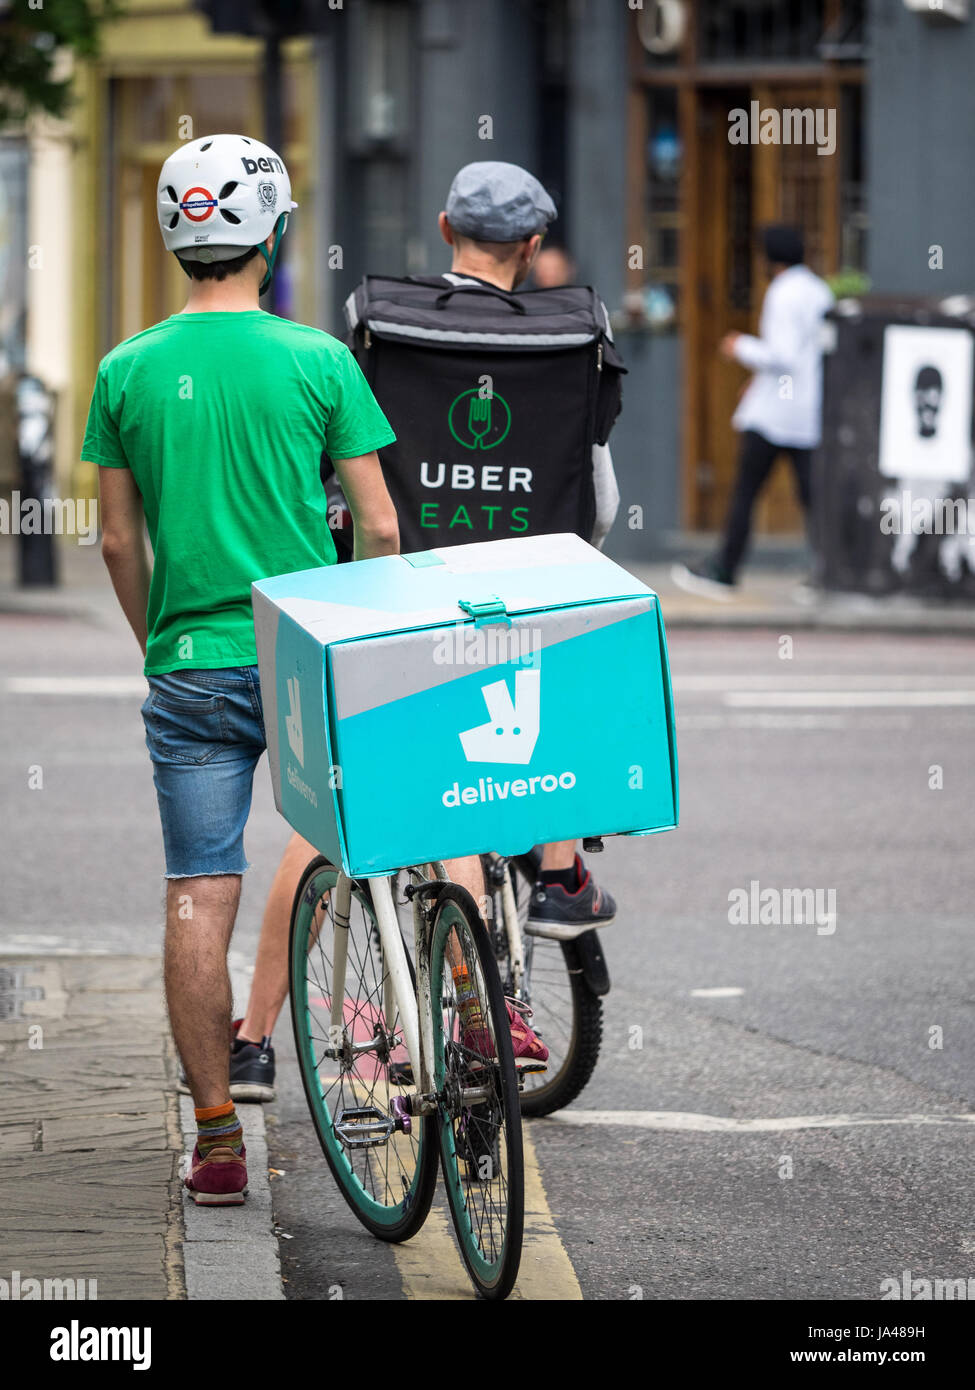 e86527d4e58 Deliveroo and Uber Eats food delivery bike couriers wait at traffic lights  while delivering food to